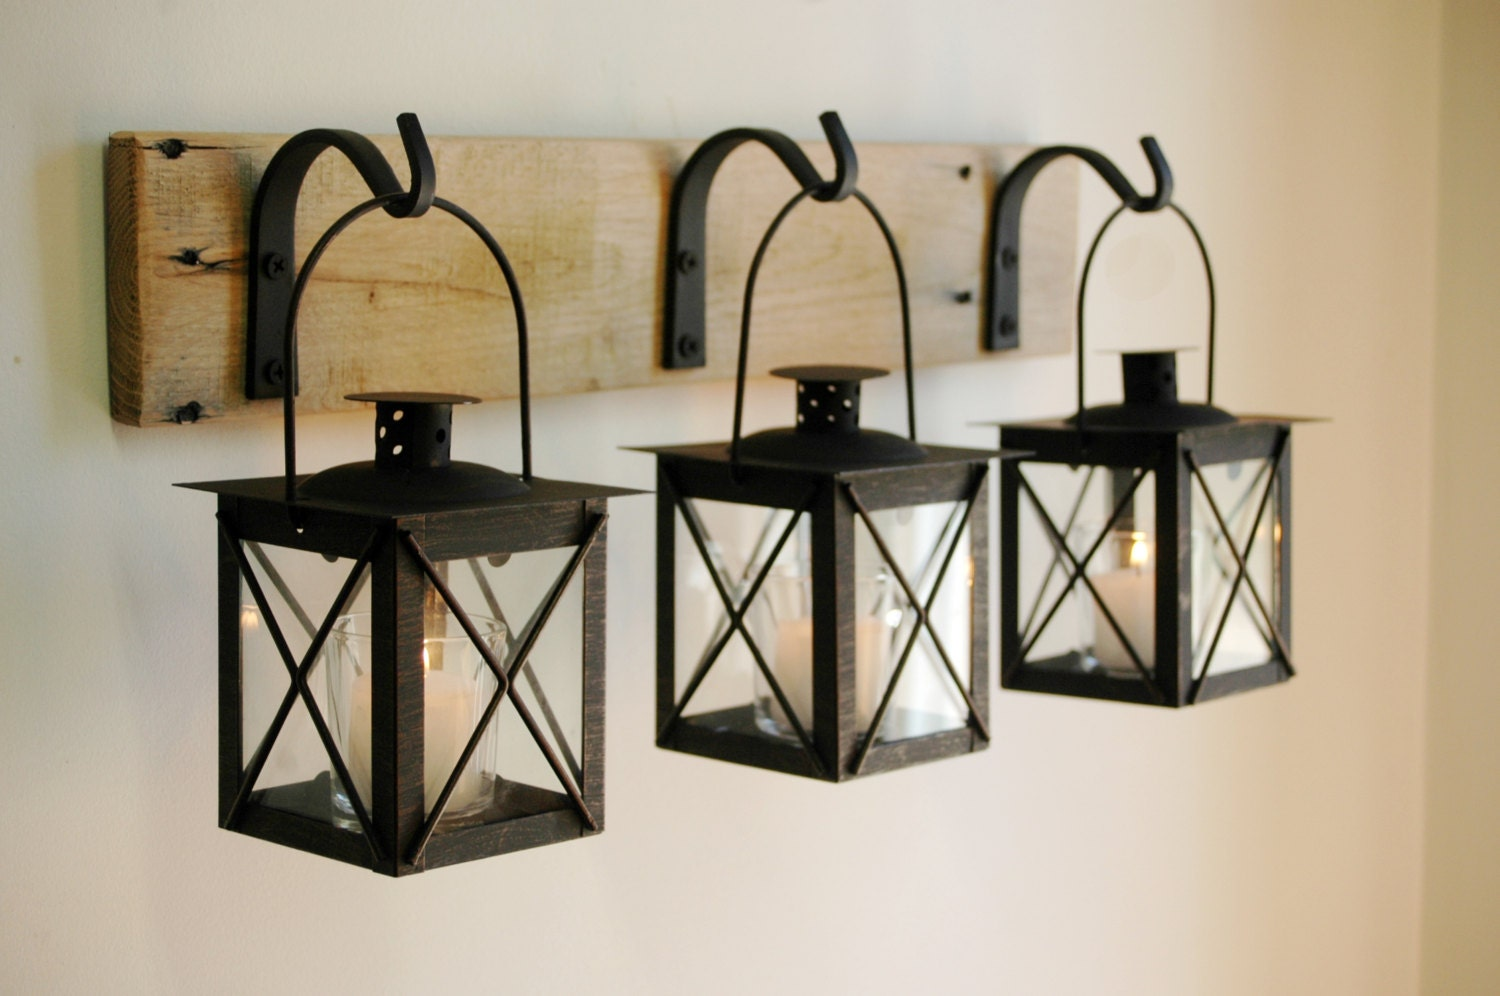 Black lantern trio wall decor home decor rustic decor for Home decor stuff